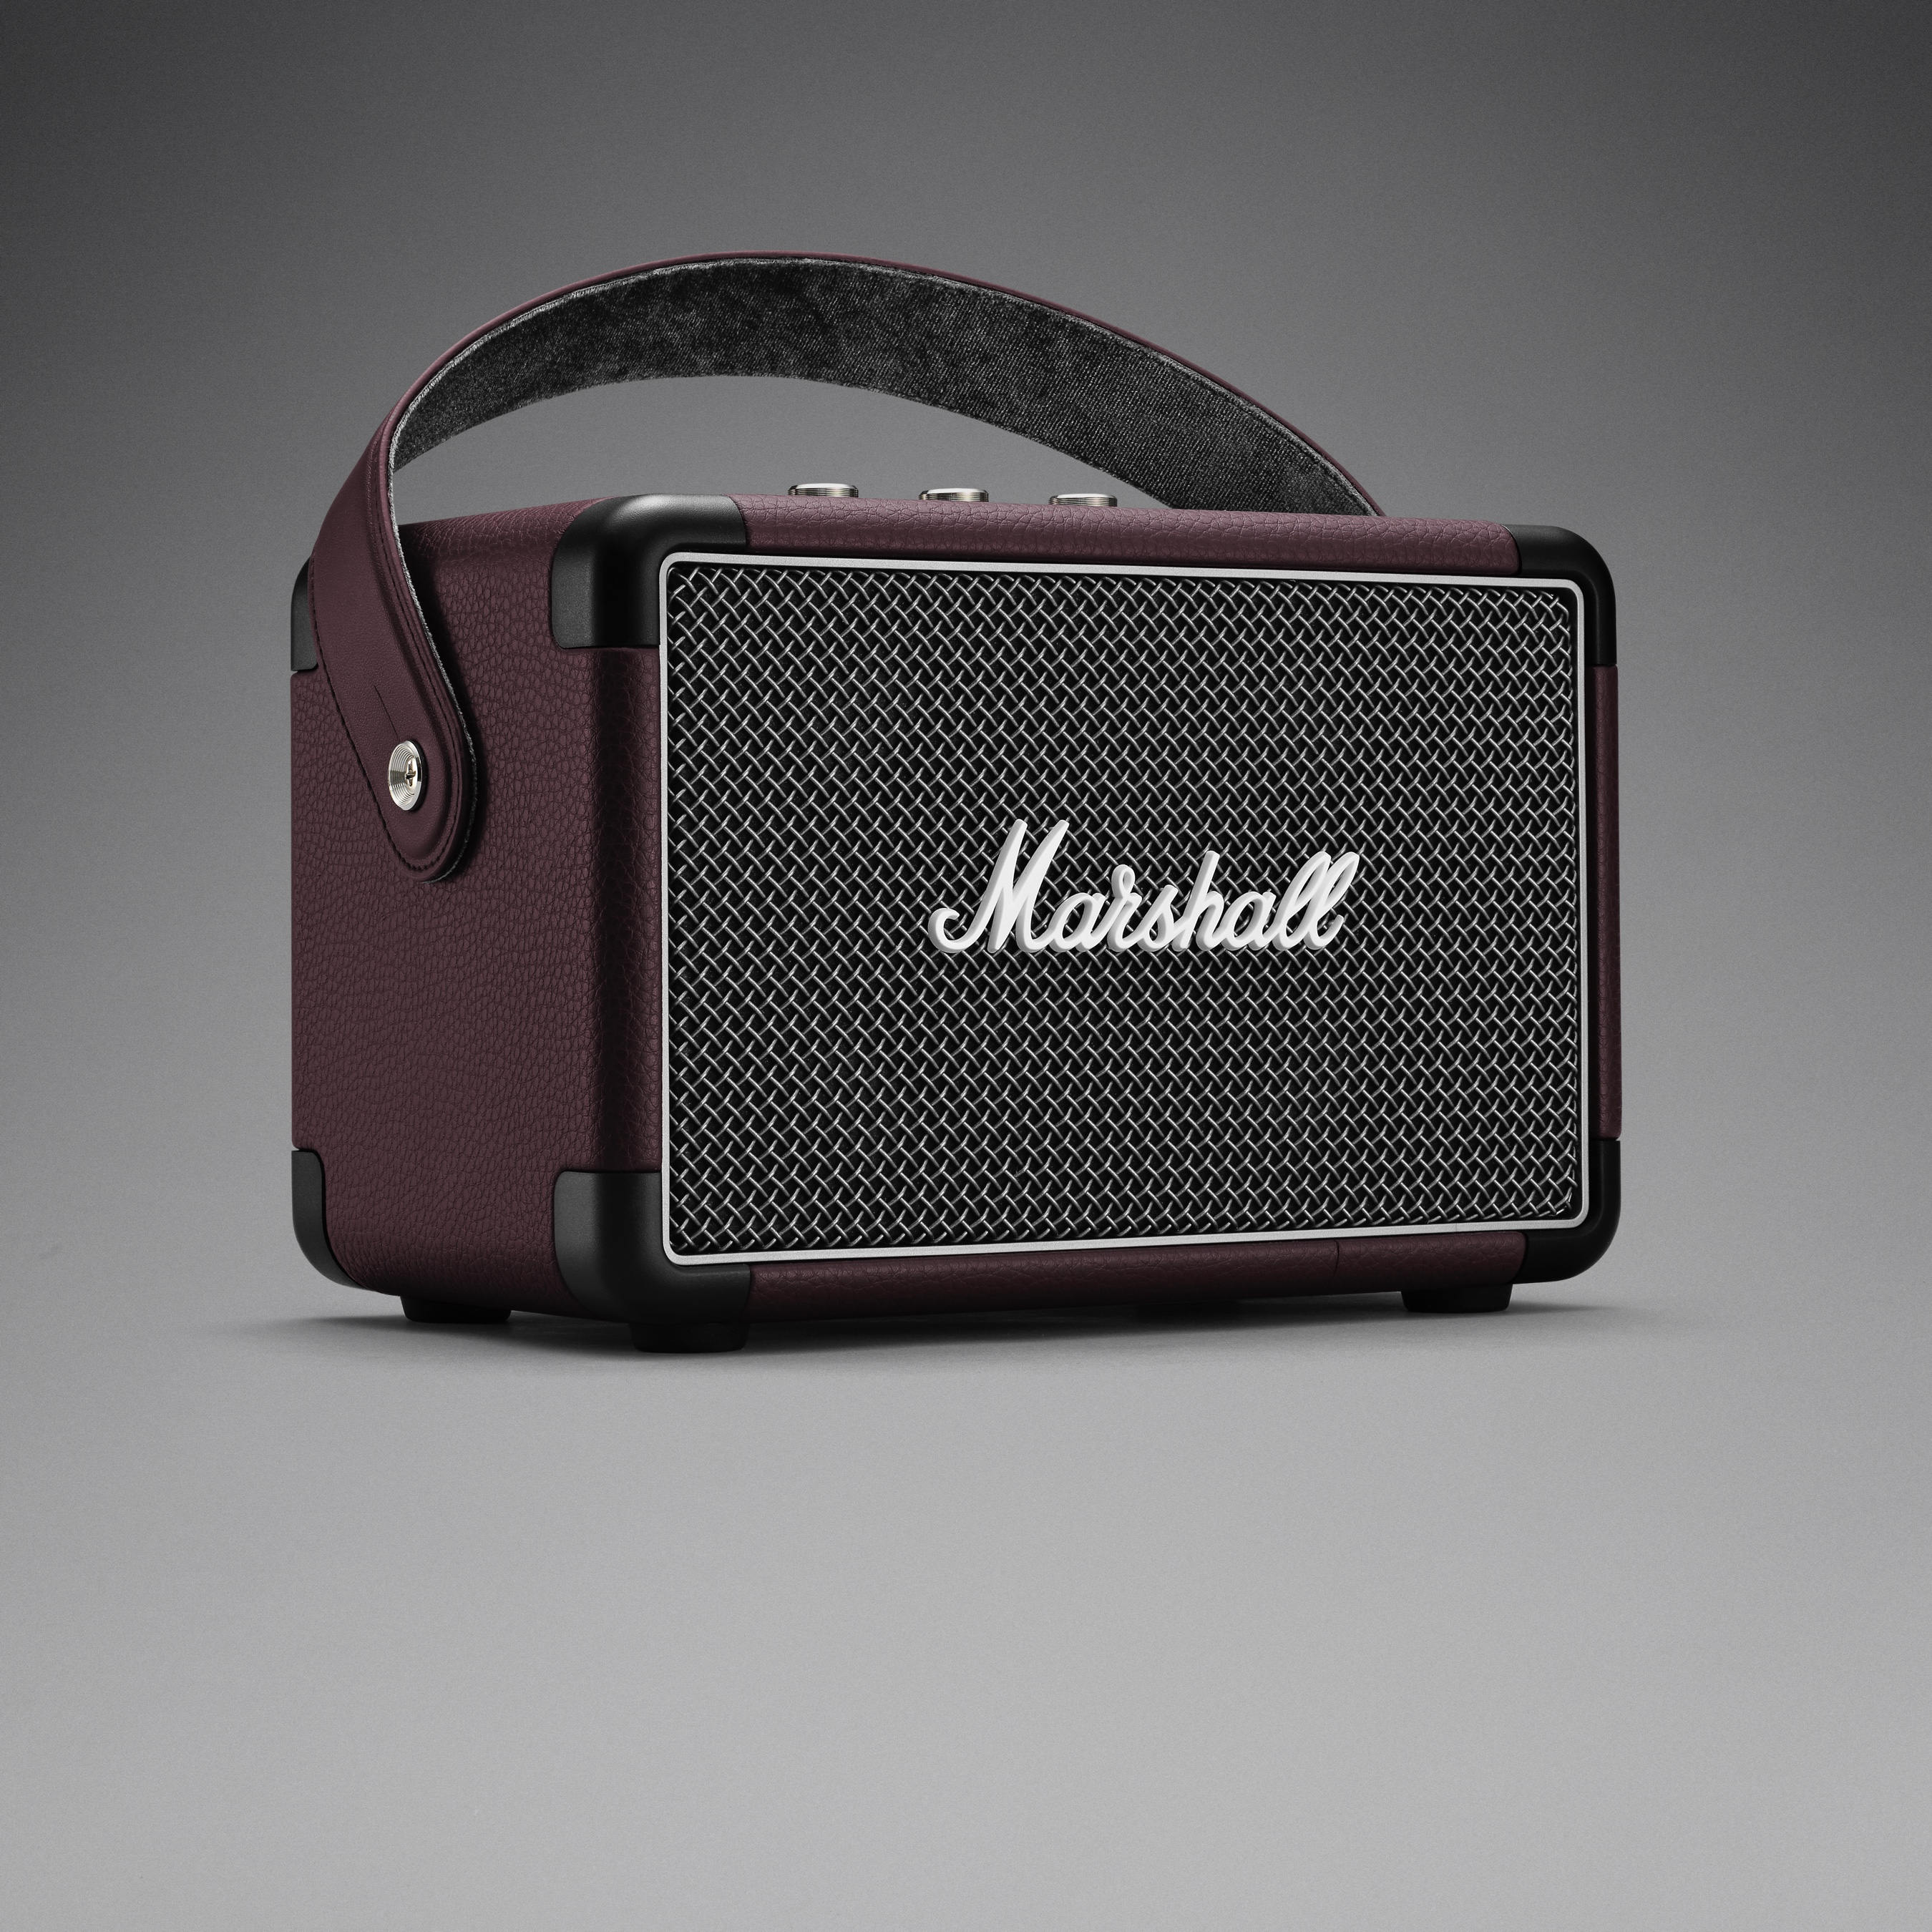 best loved b4cb0 97c4f Official brand store of Marshall headphones and speakers ...